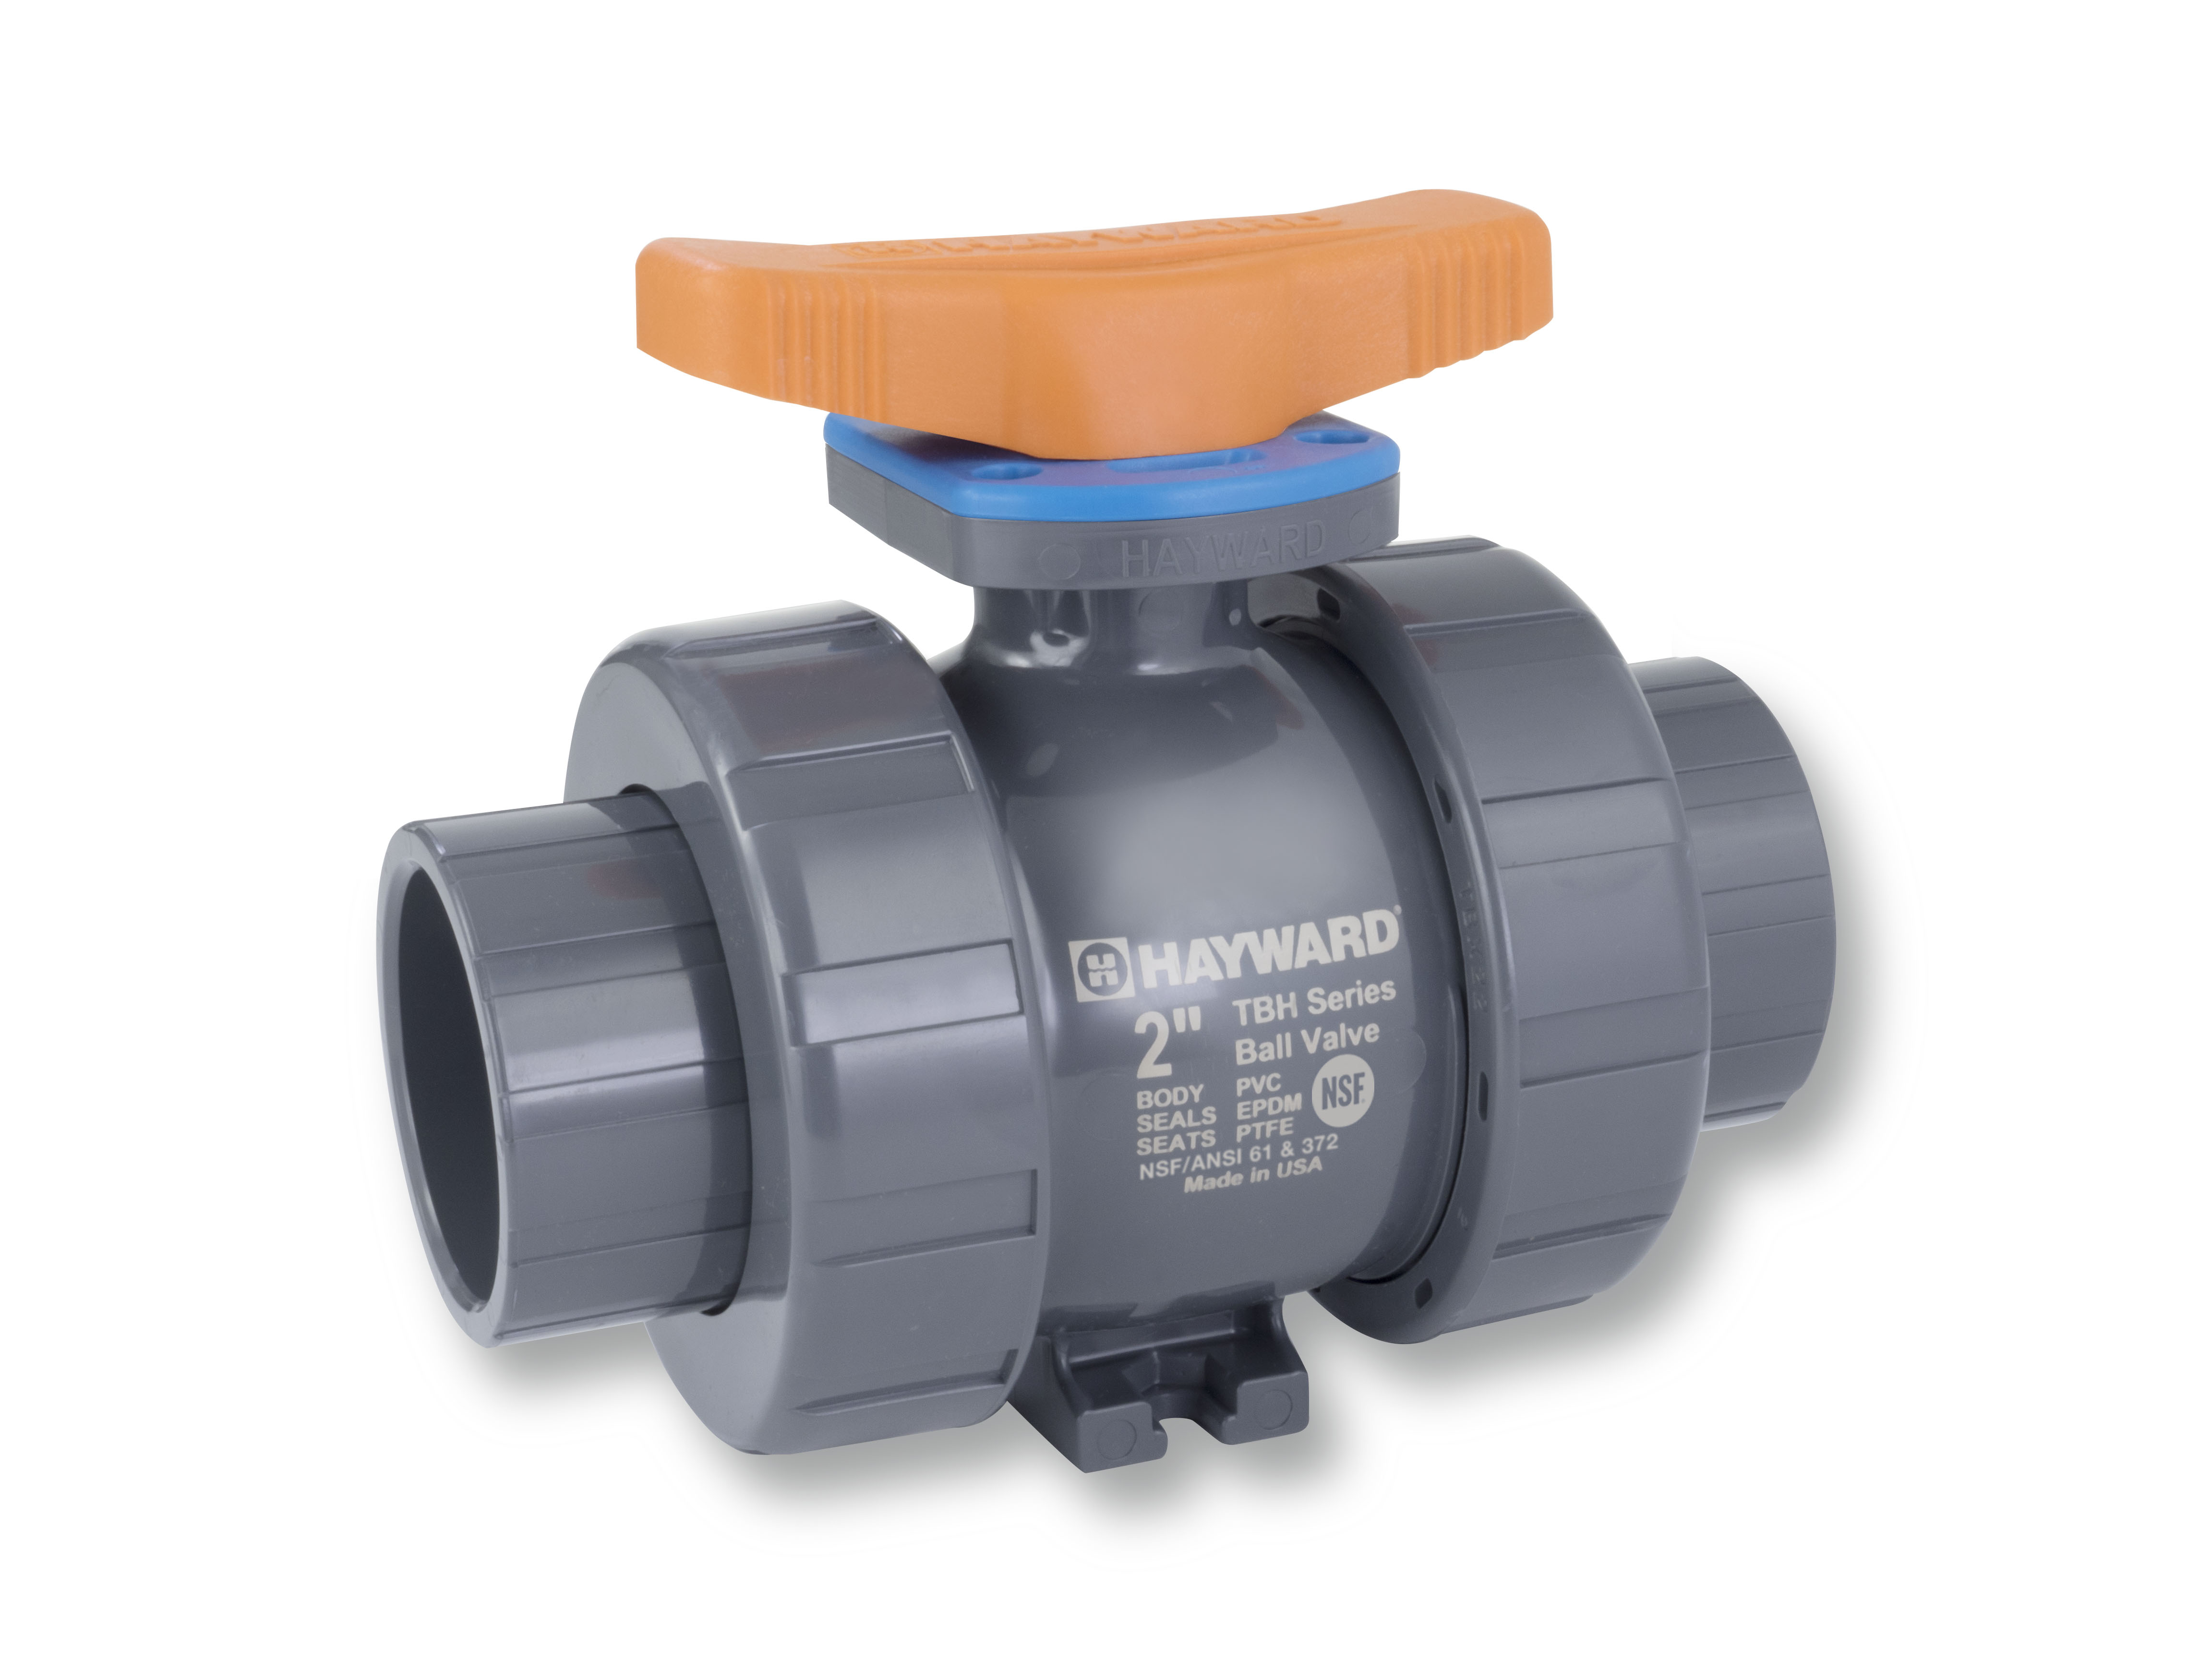 Hayward Industrial Valves